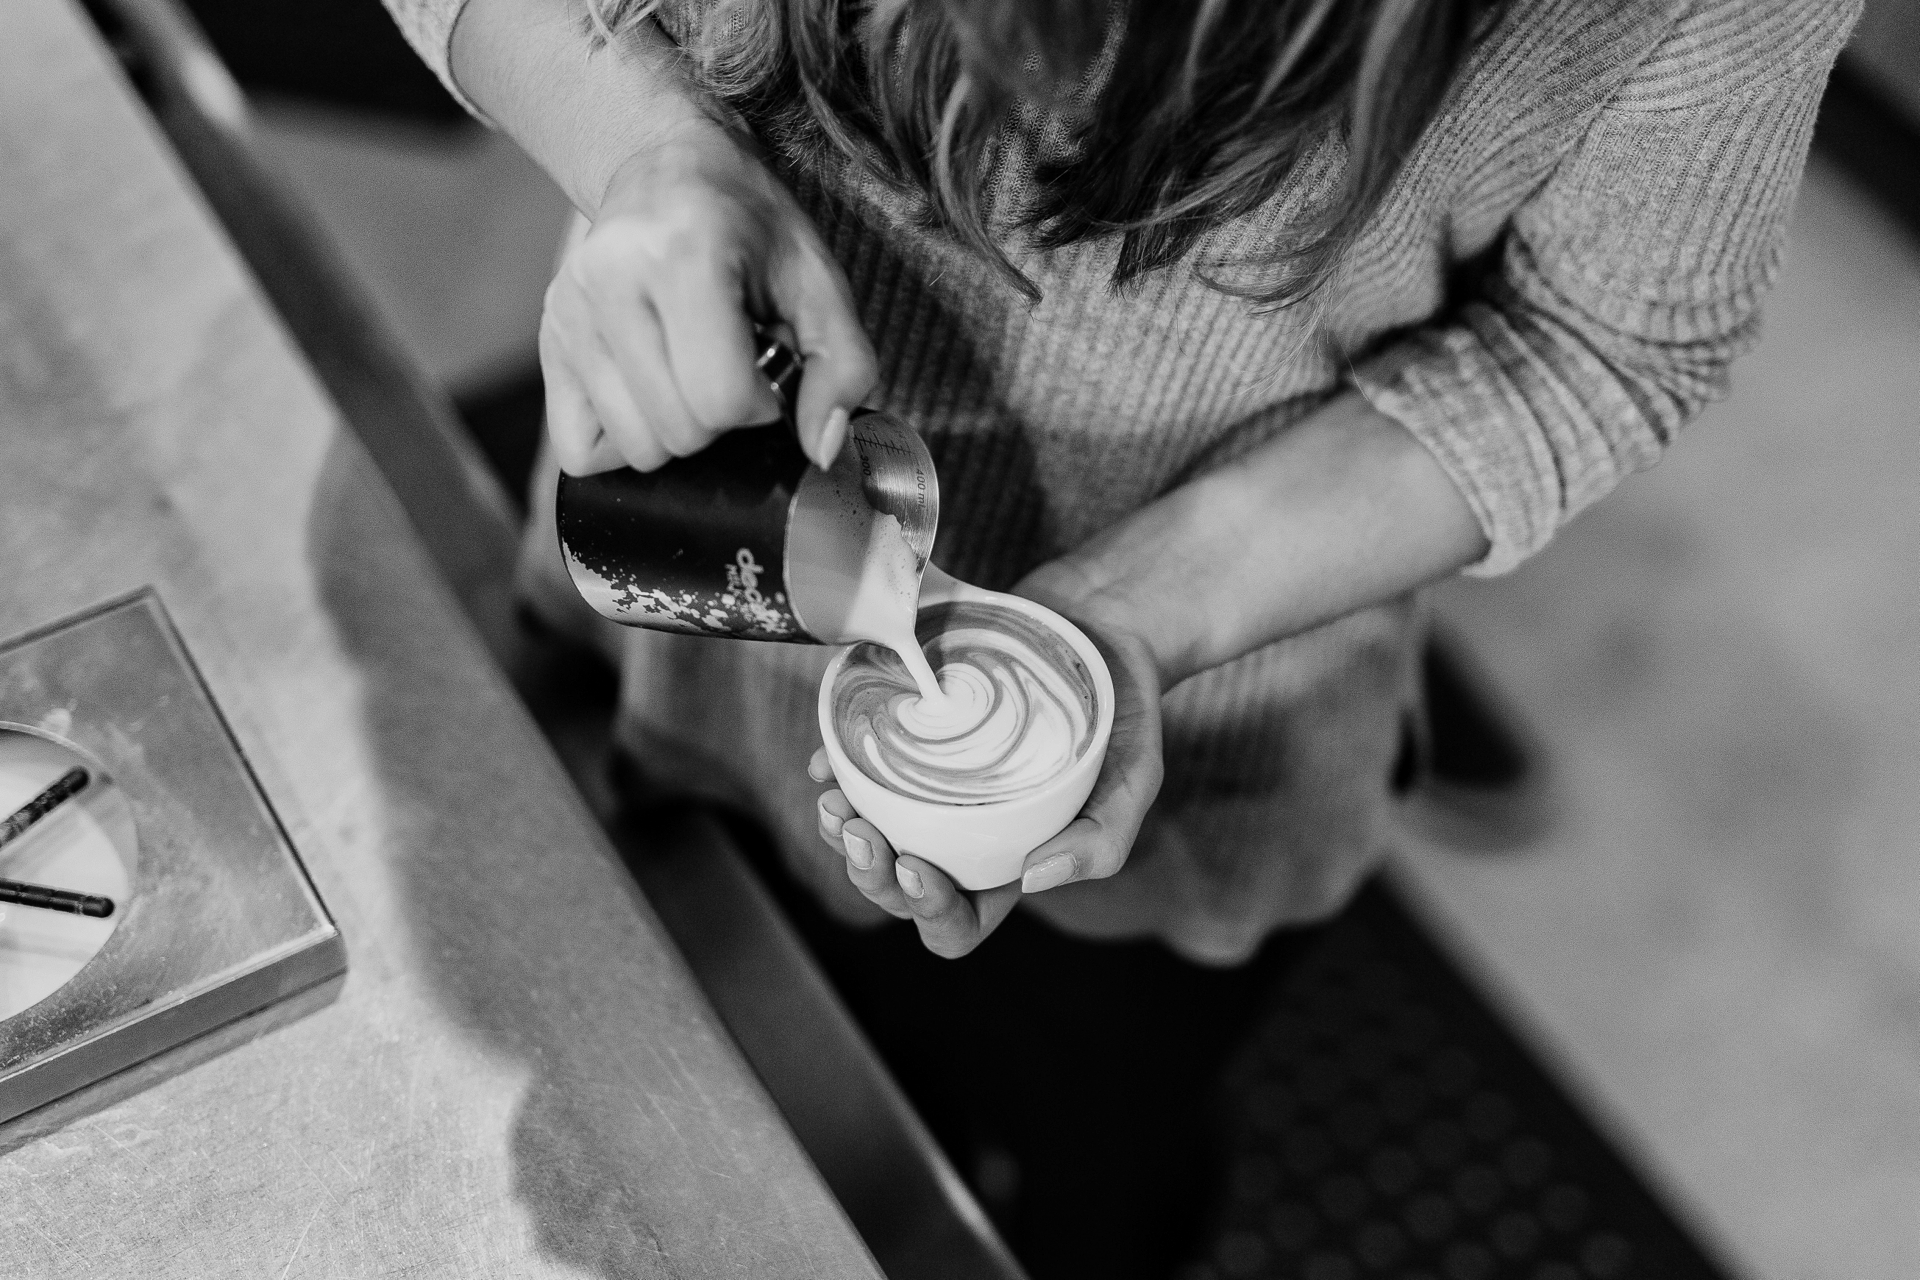 A barista pouring a latte, seen from above